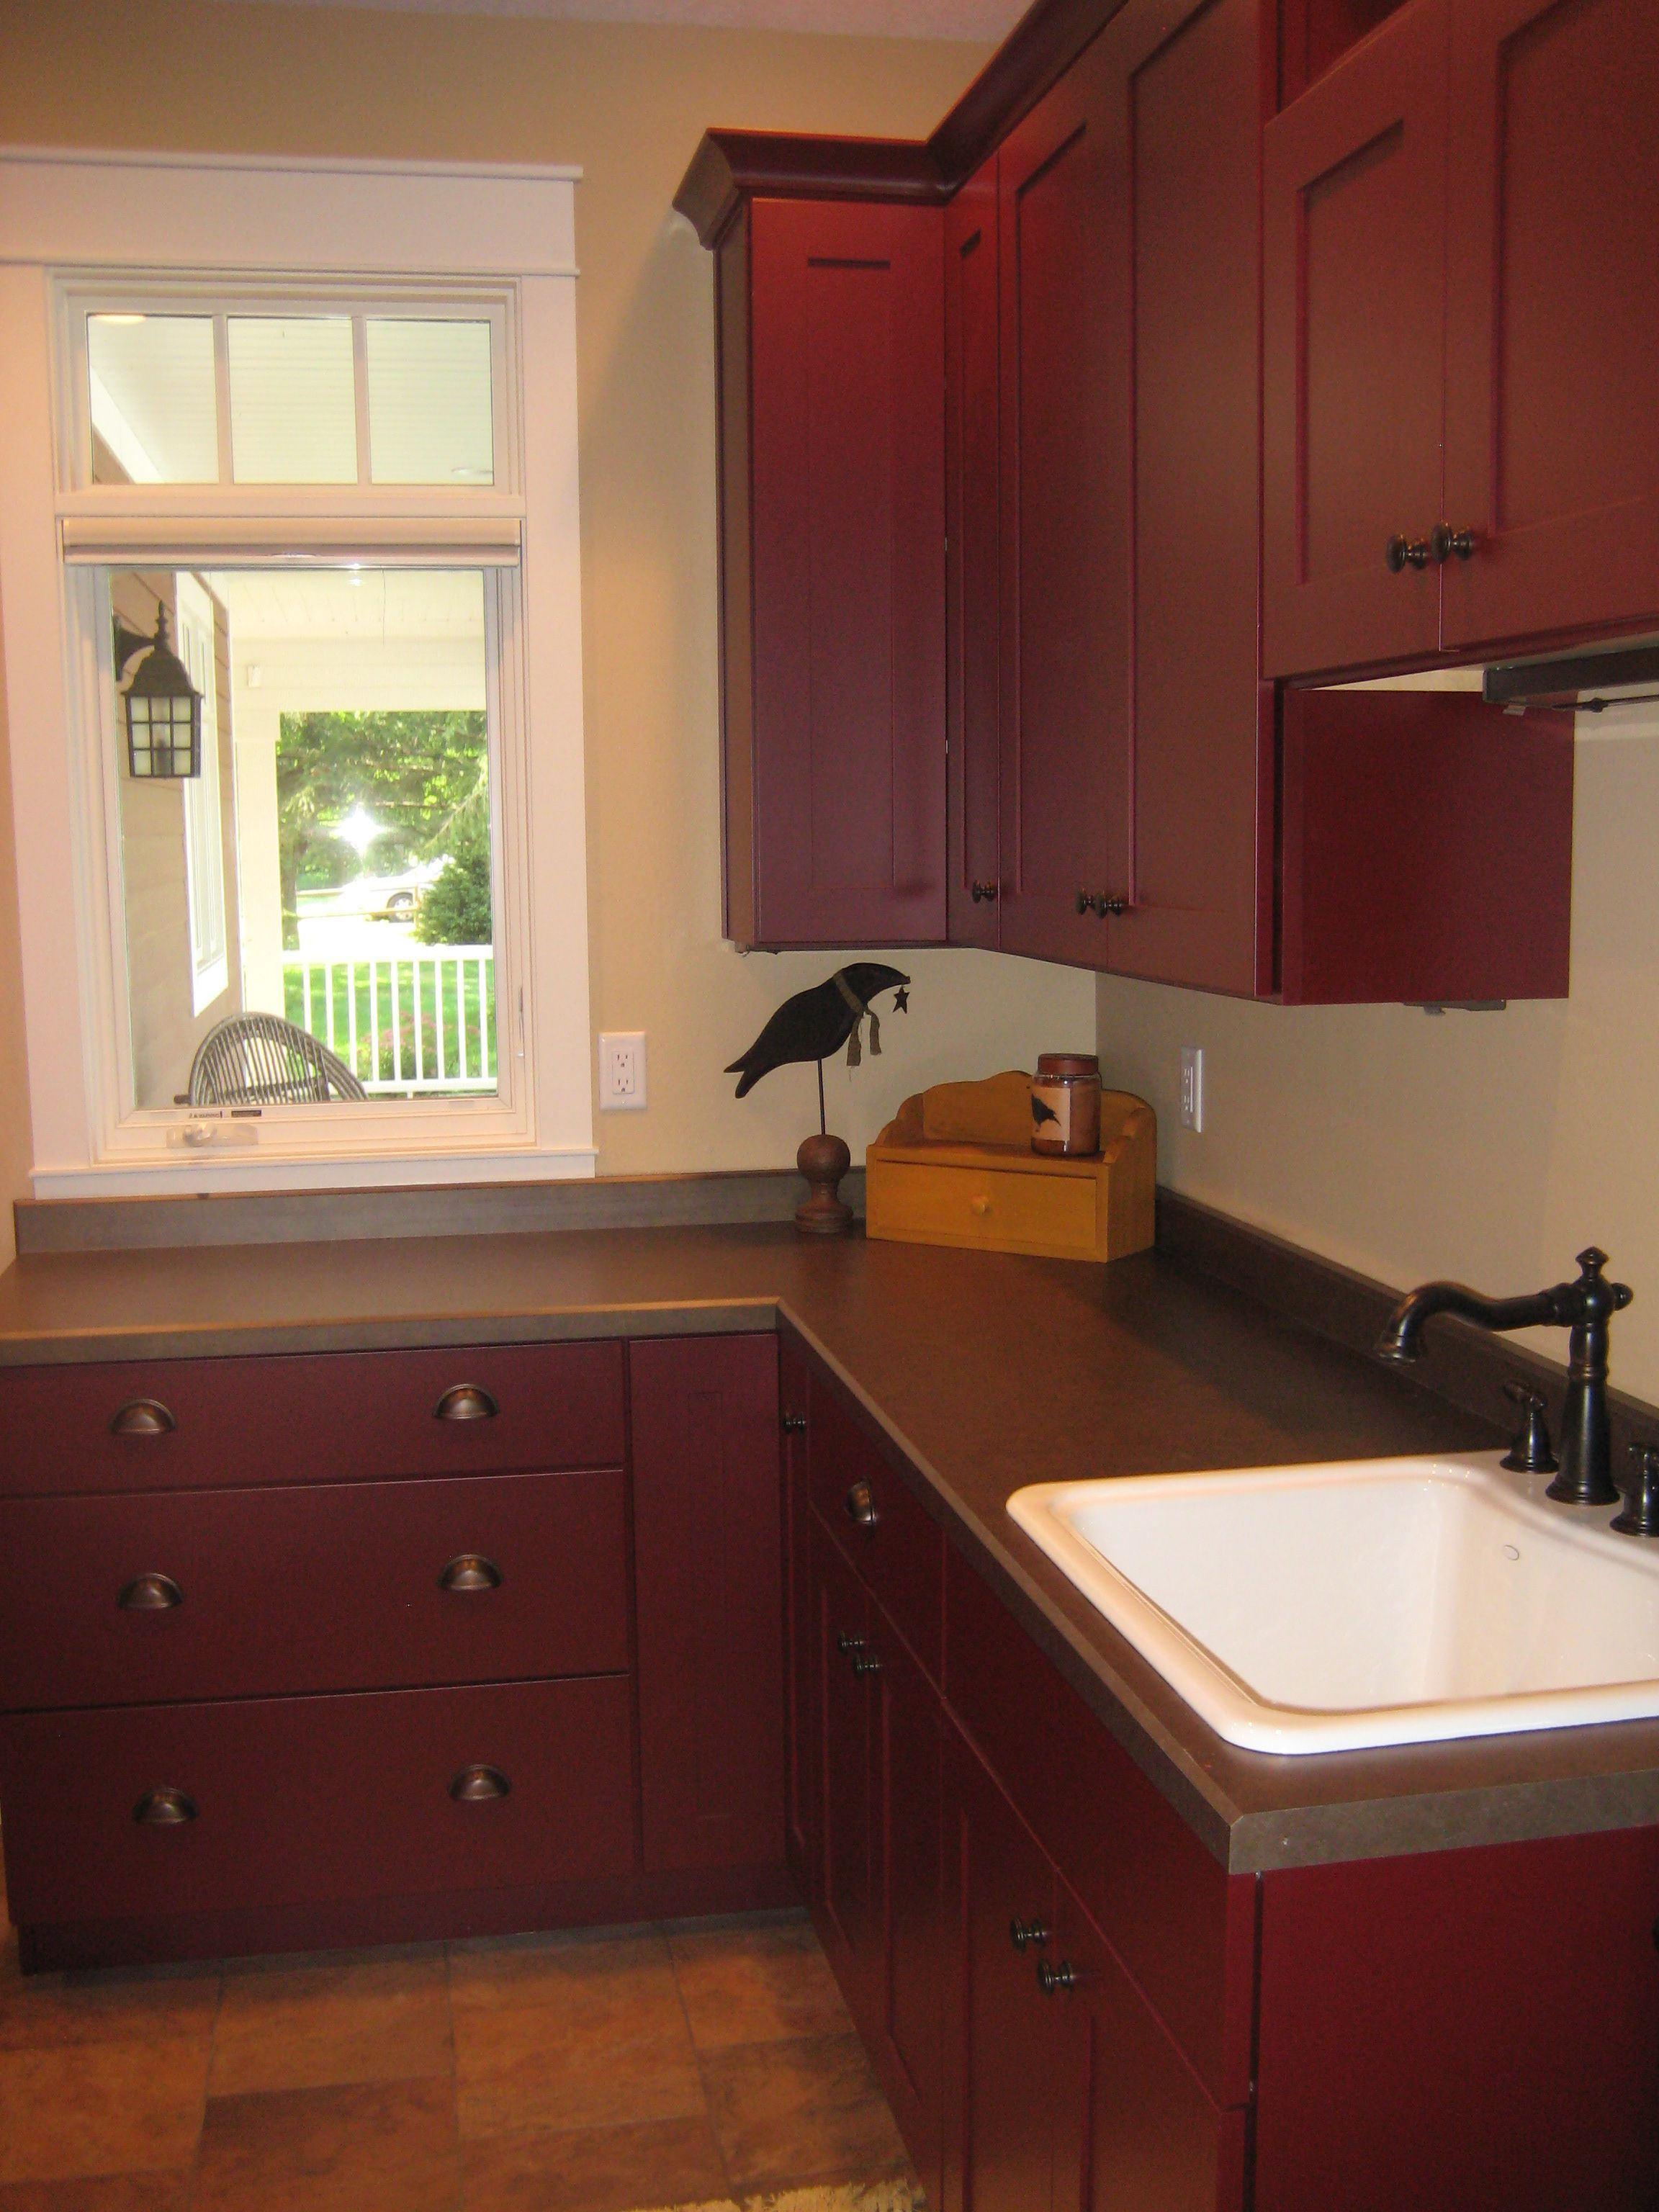 Laundry Room Red With Black Washer And Dryer Look Is Very